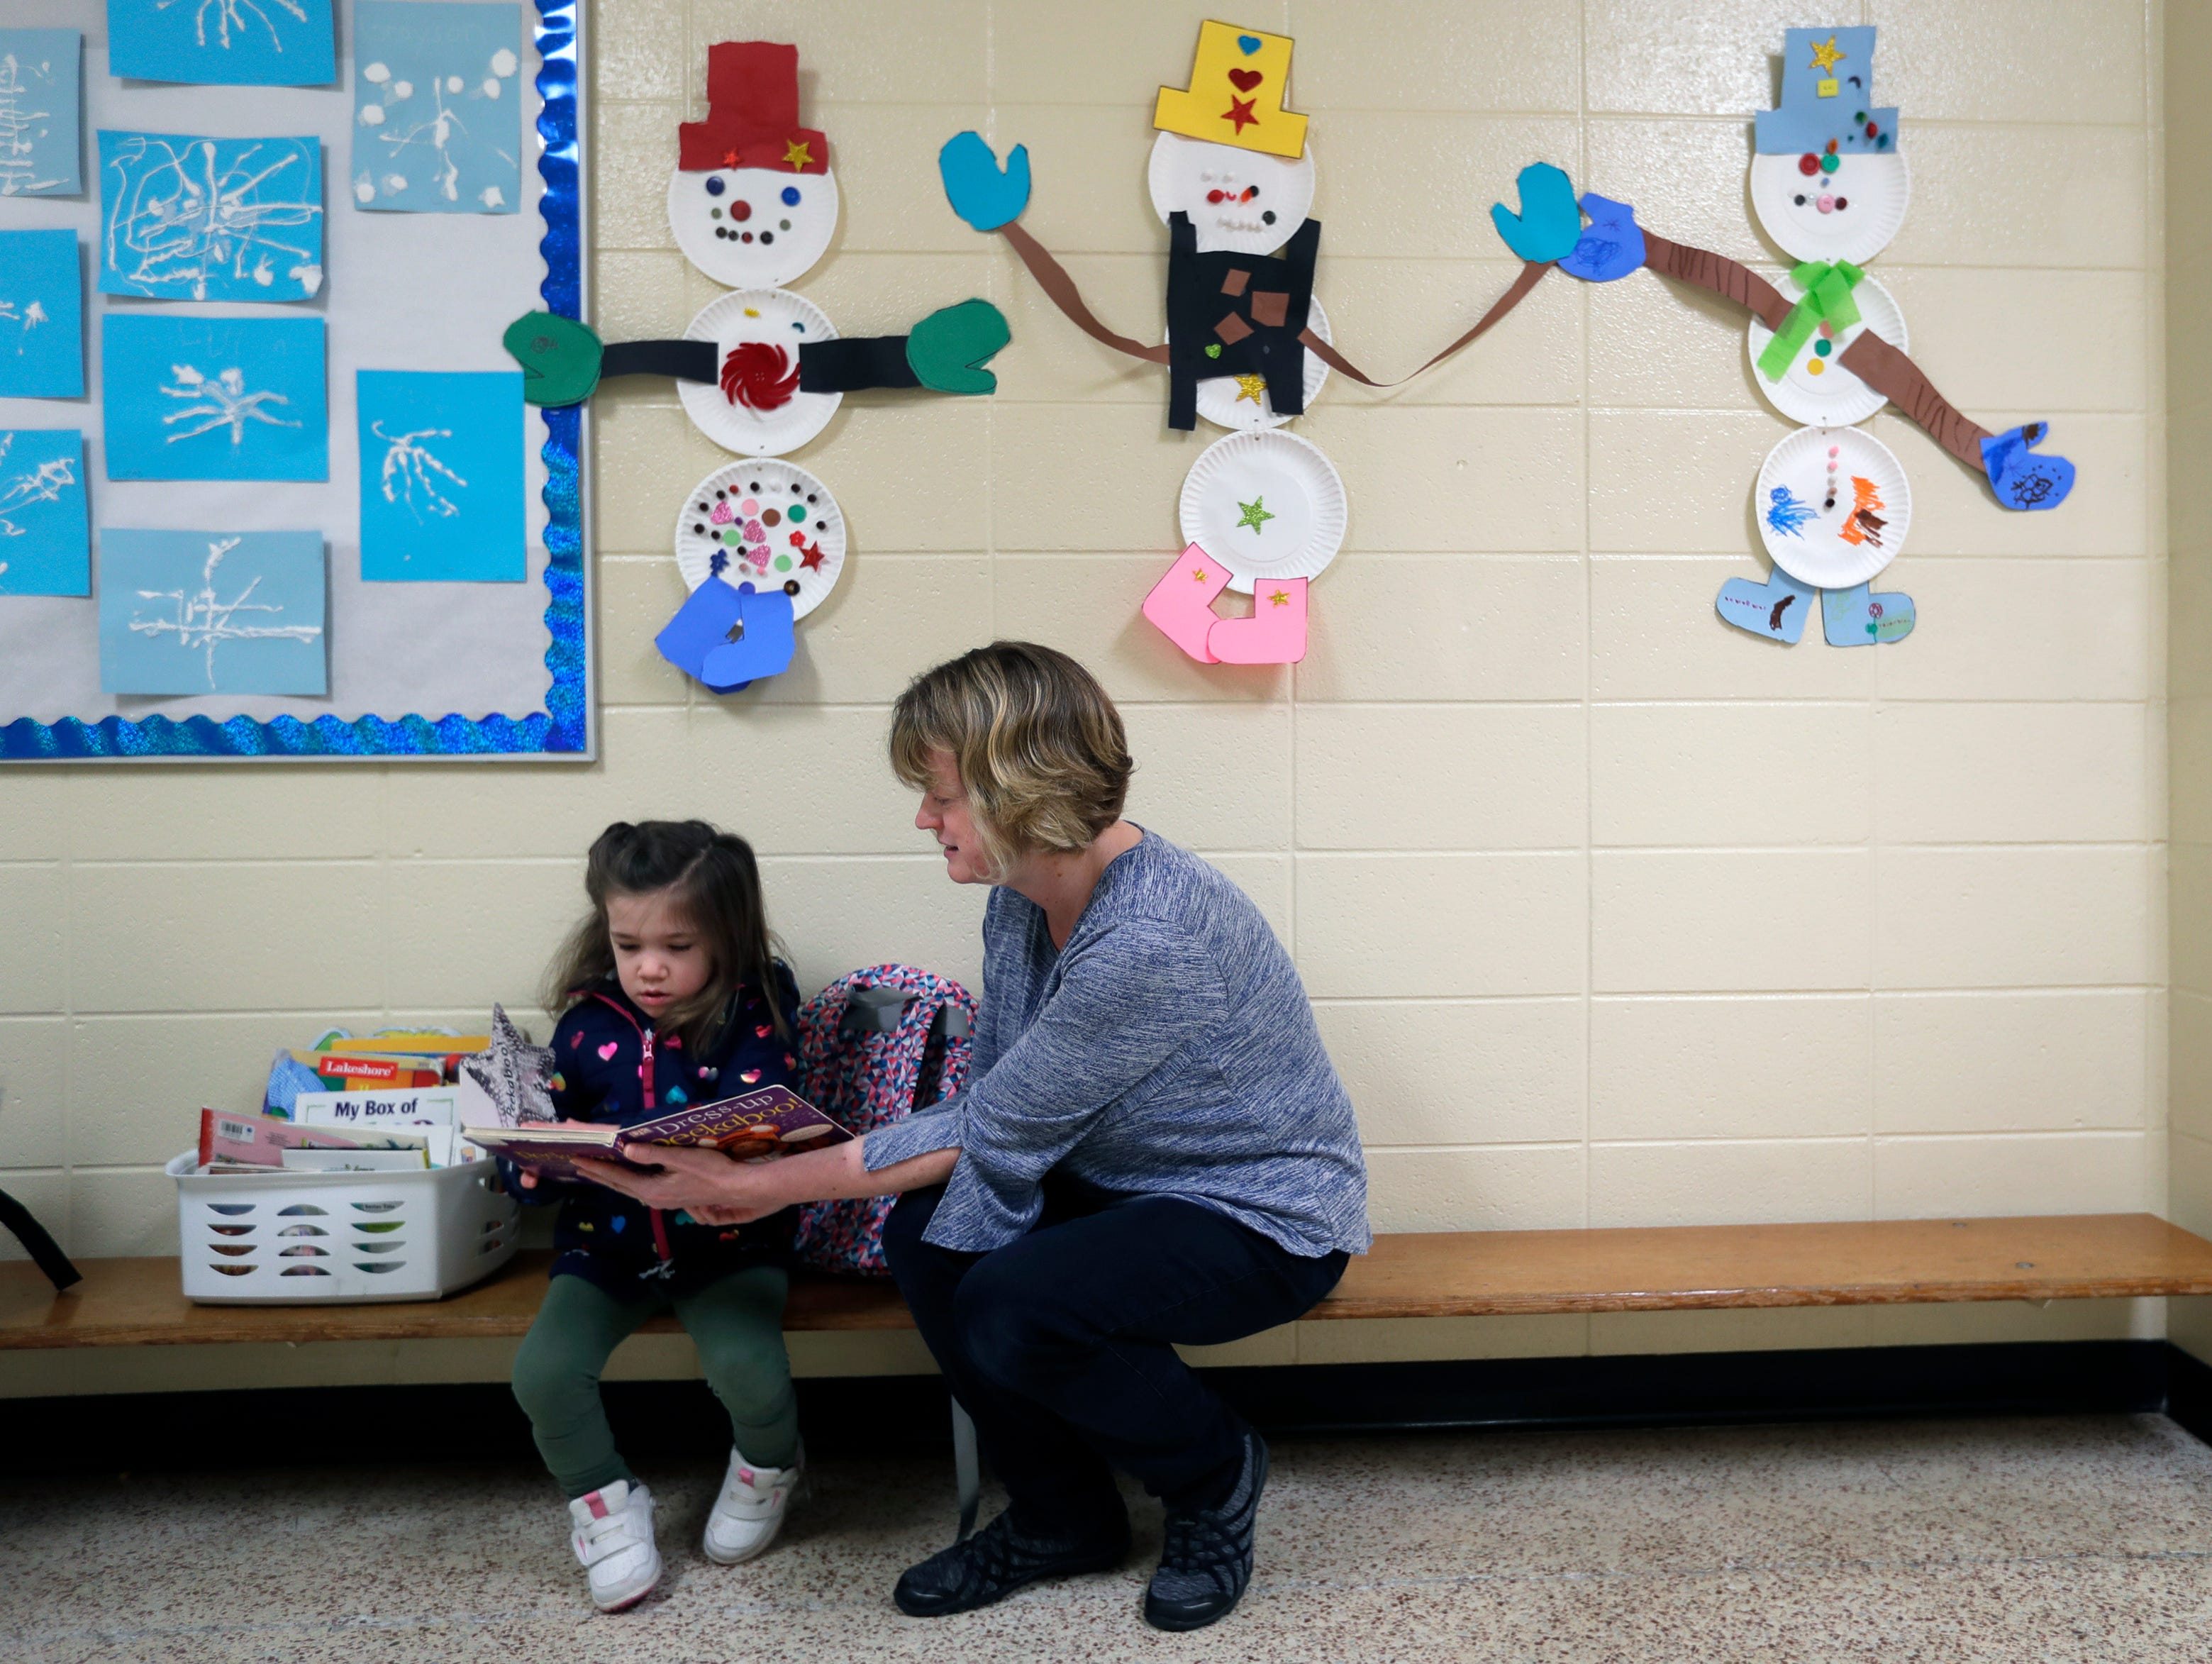 Avi Brennan, 4, looks at a book with her teacher Renee Poeschl as they wait for her classmates to arrive on her first day of school Monday, January 7, 2019, at the Washington School of Early Learning in Neenah, Wis. 